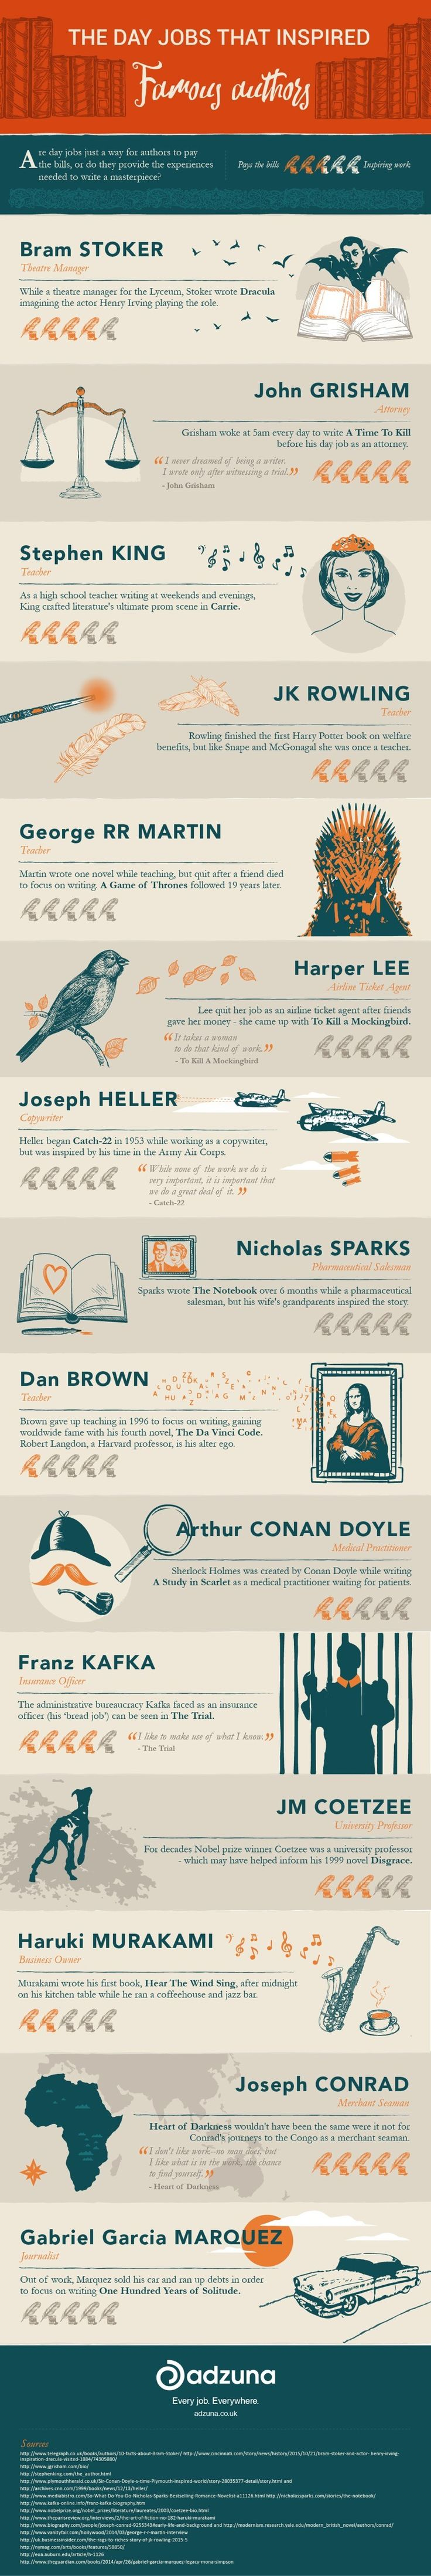 J.K. Rowling, Stephen King, George R.R. Martin, and Dan Brown were teachers #Infographic